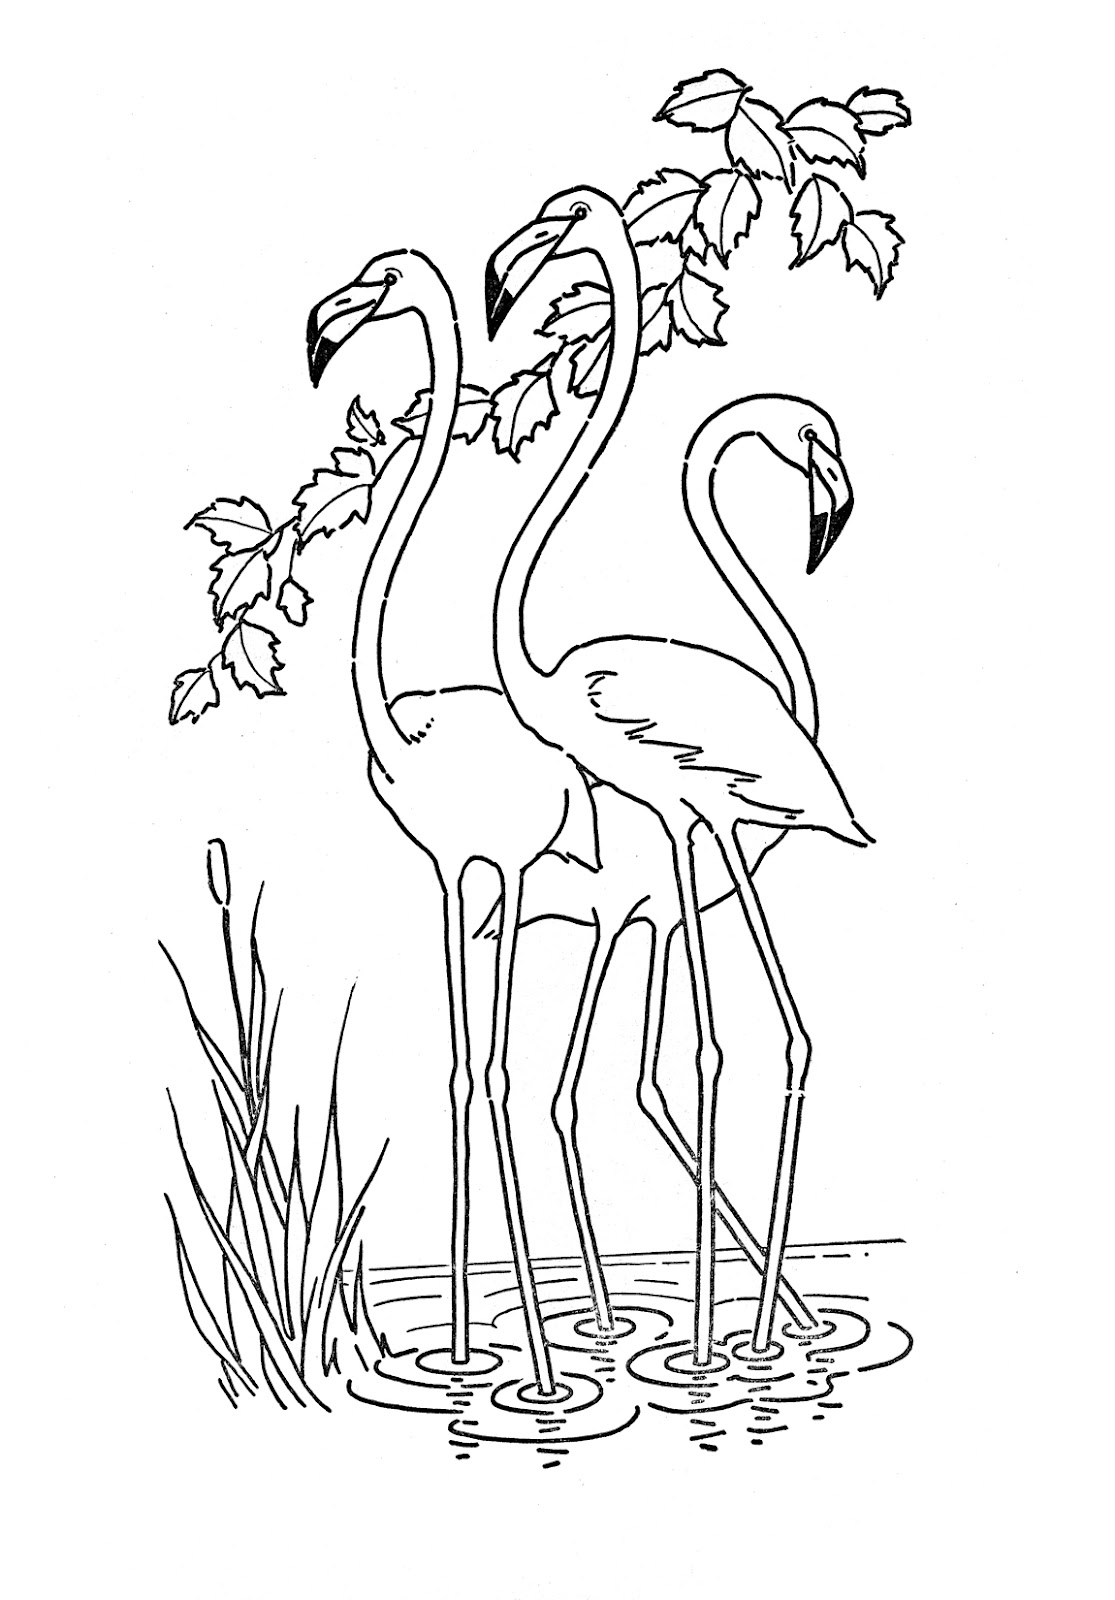 flamingo coloring pages flamingo coloring pages to download and print for free pages flamingo coloring